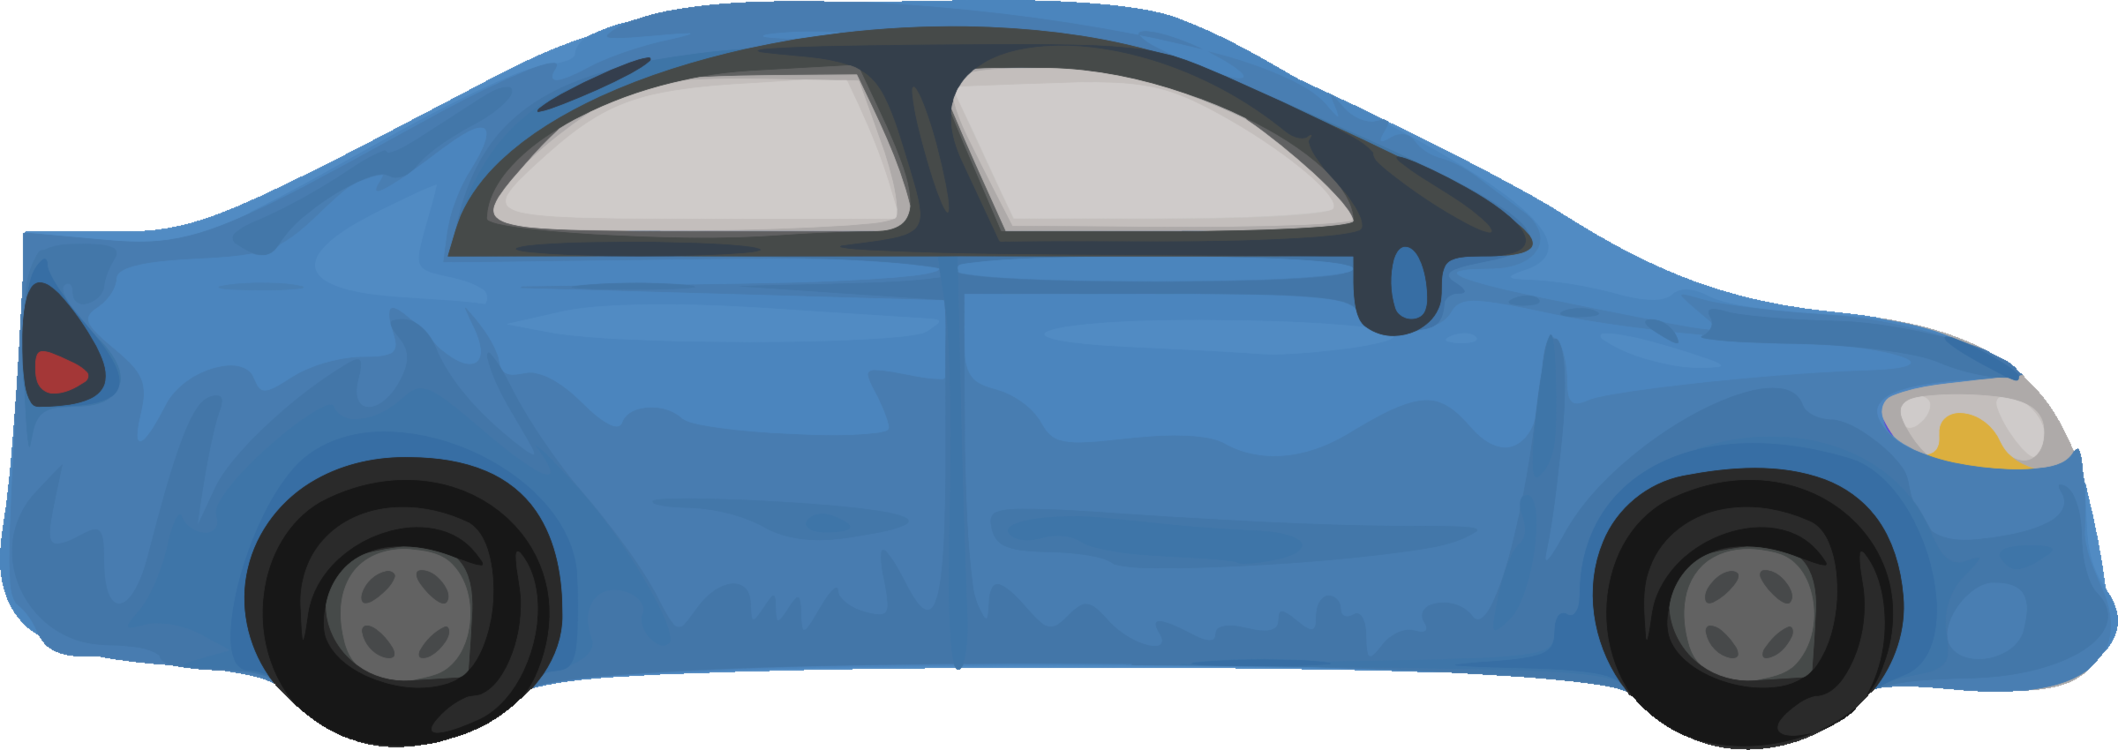 Blue clipart car png download Car Renault Twingo Peugeot 206 Computer Icons free commercial ... png download